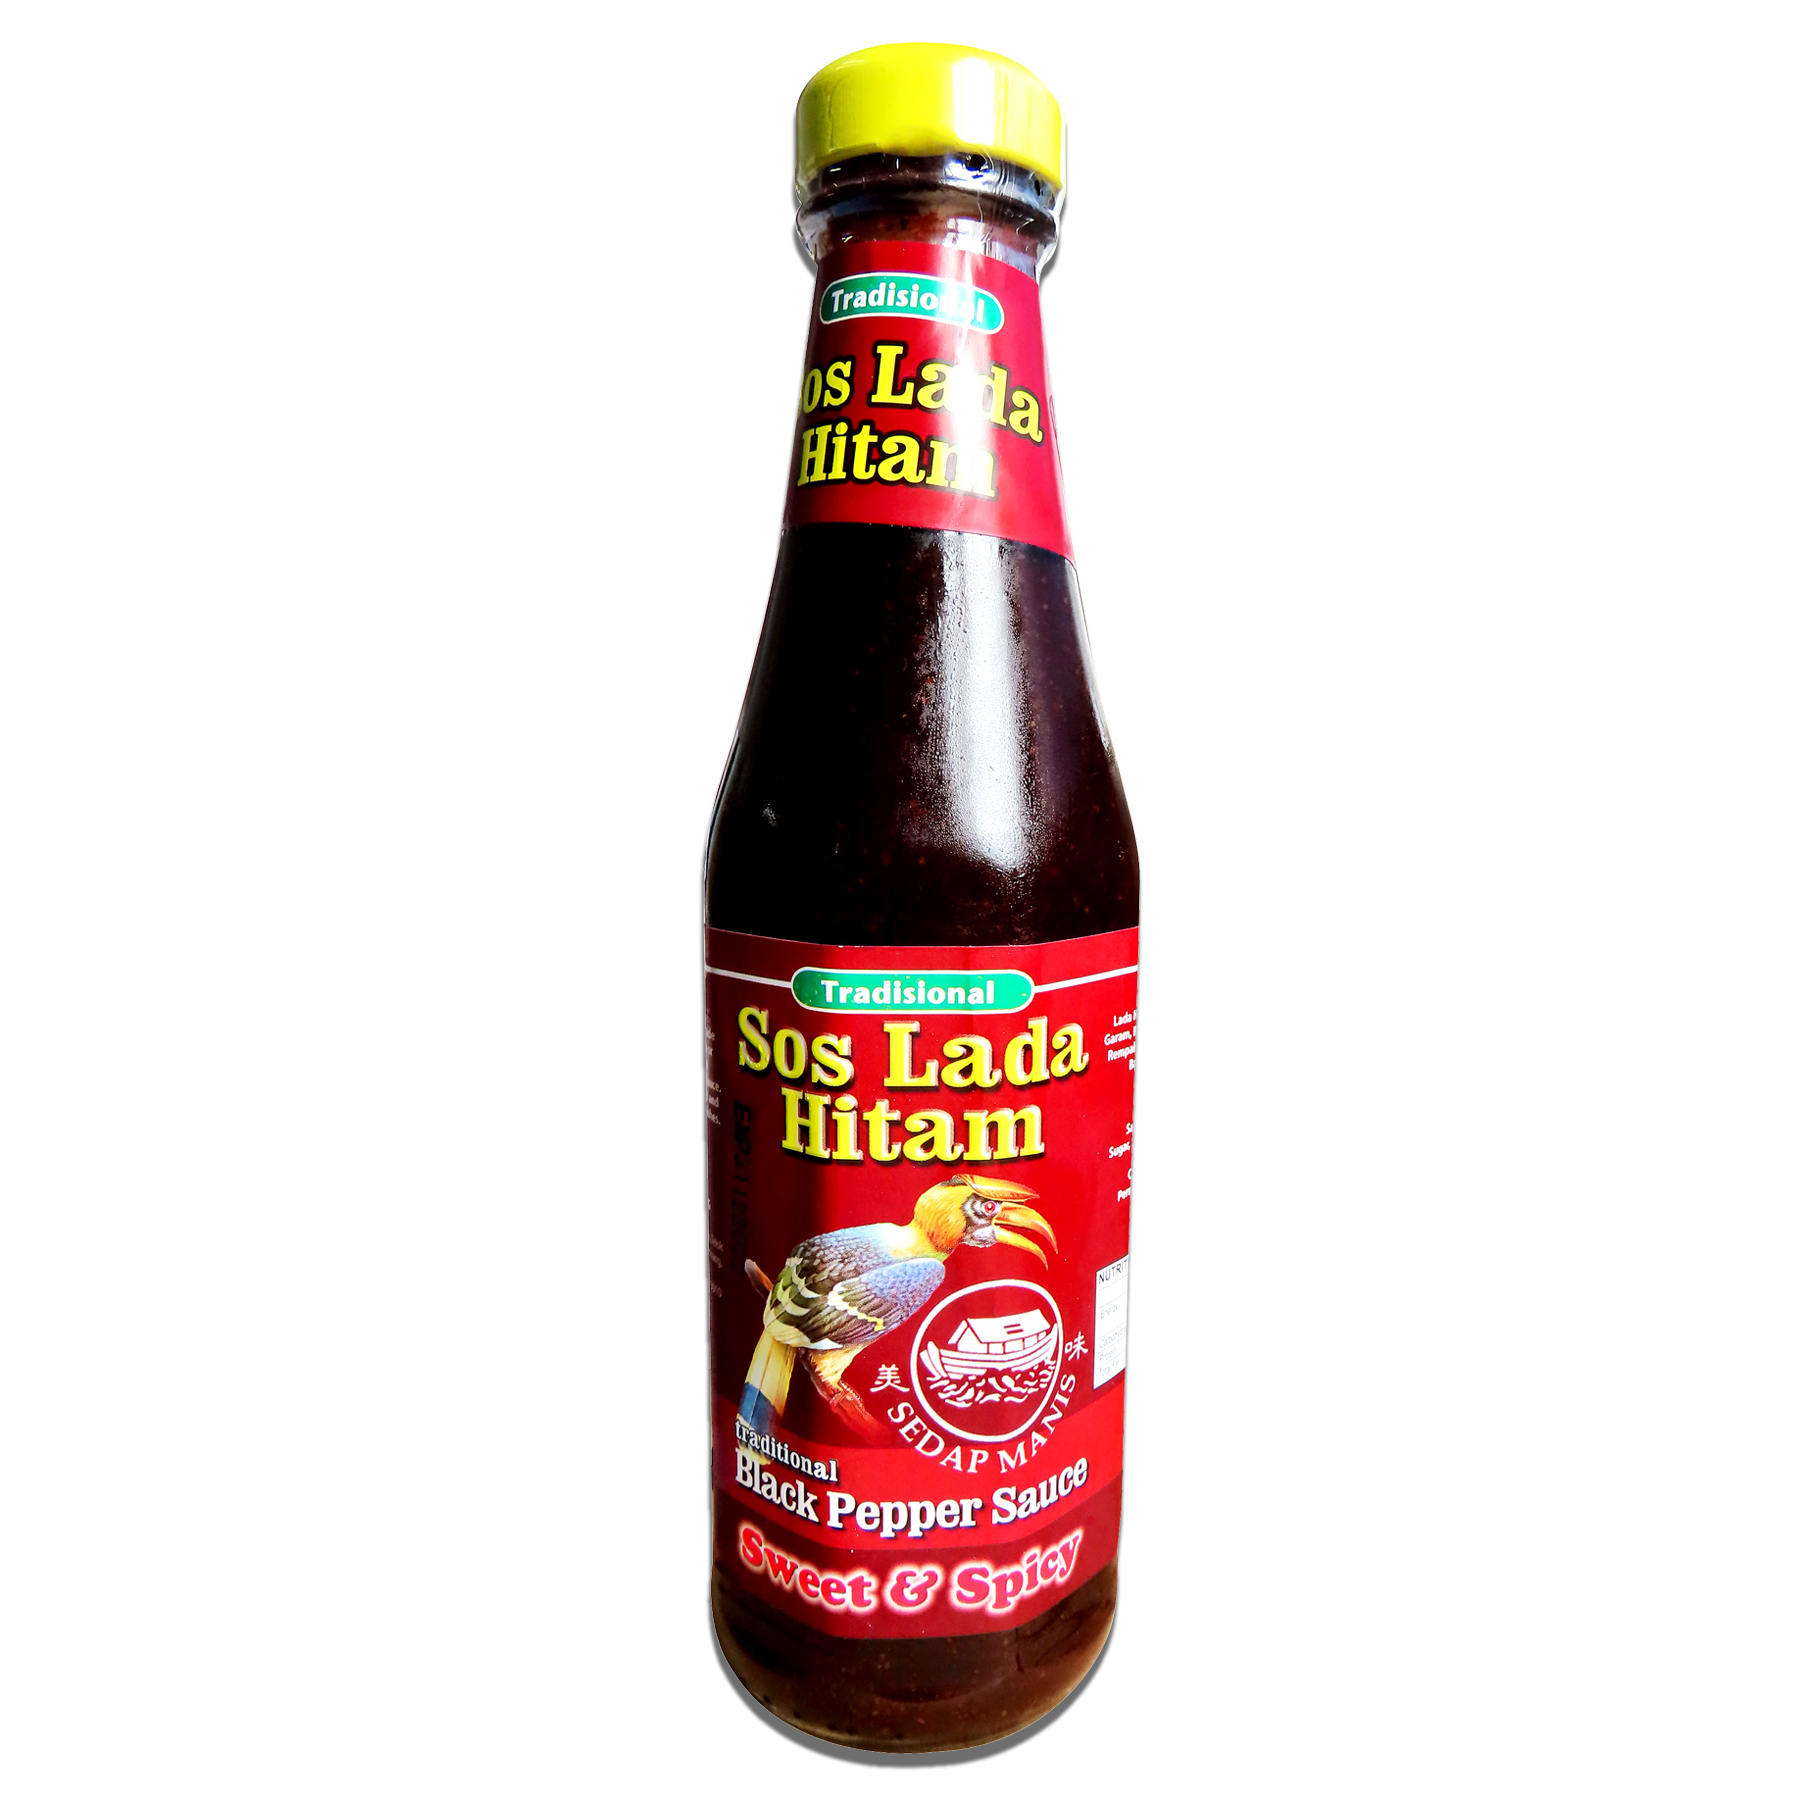 Image Traditional Sweet & Spicy Black Pepper Sauce 传统 (甜辣) 黑胡椒酱 340grams